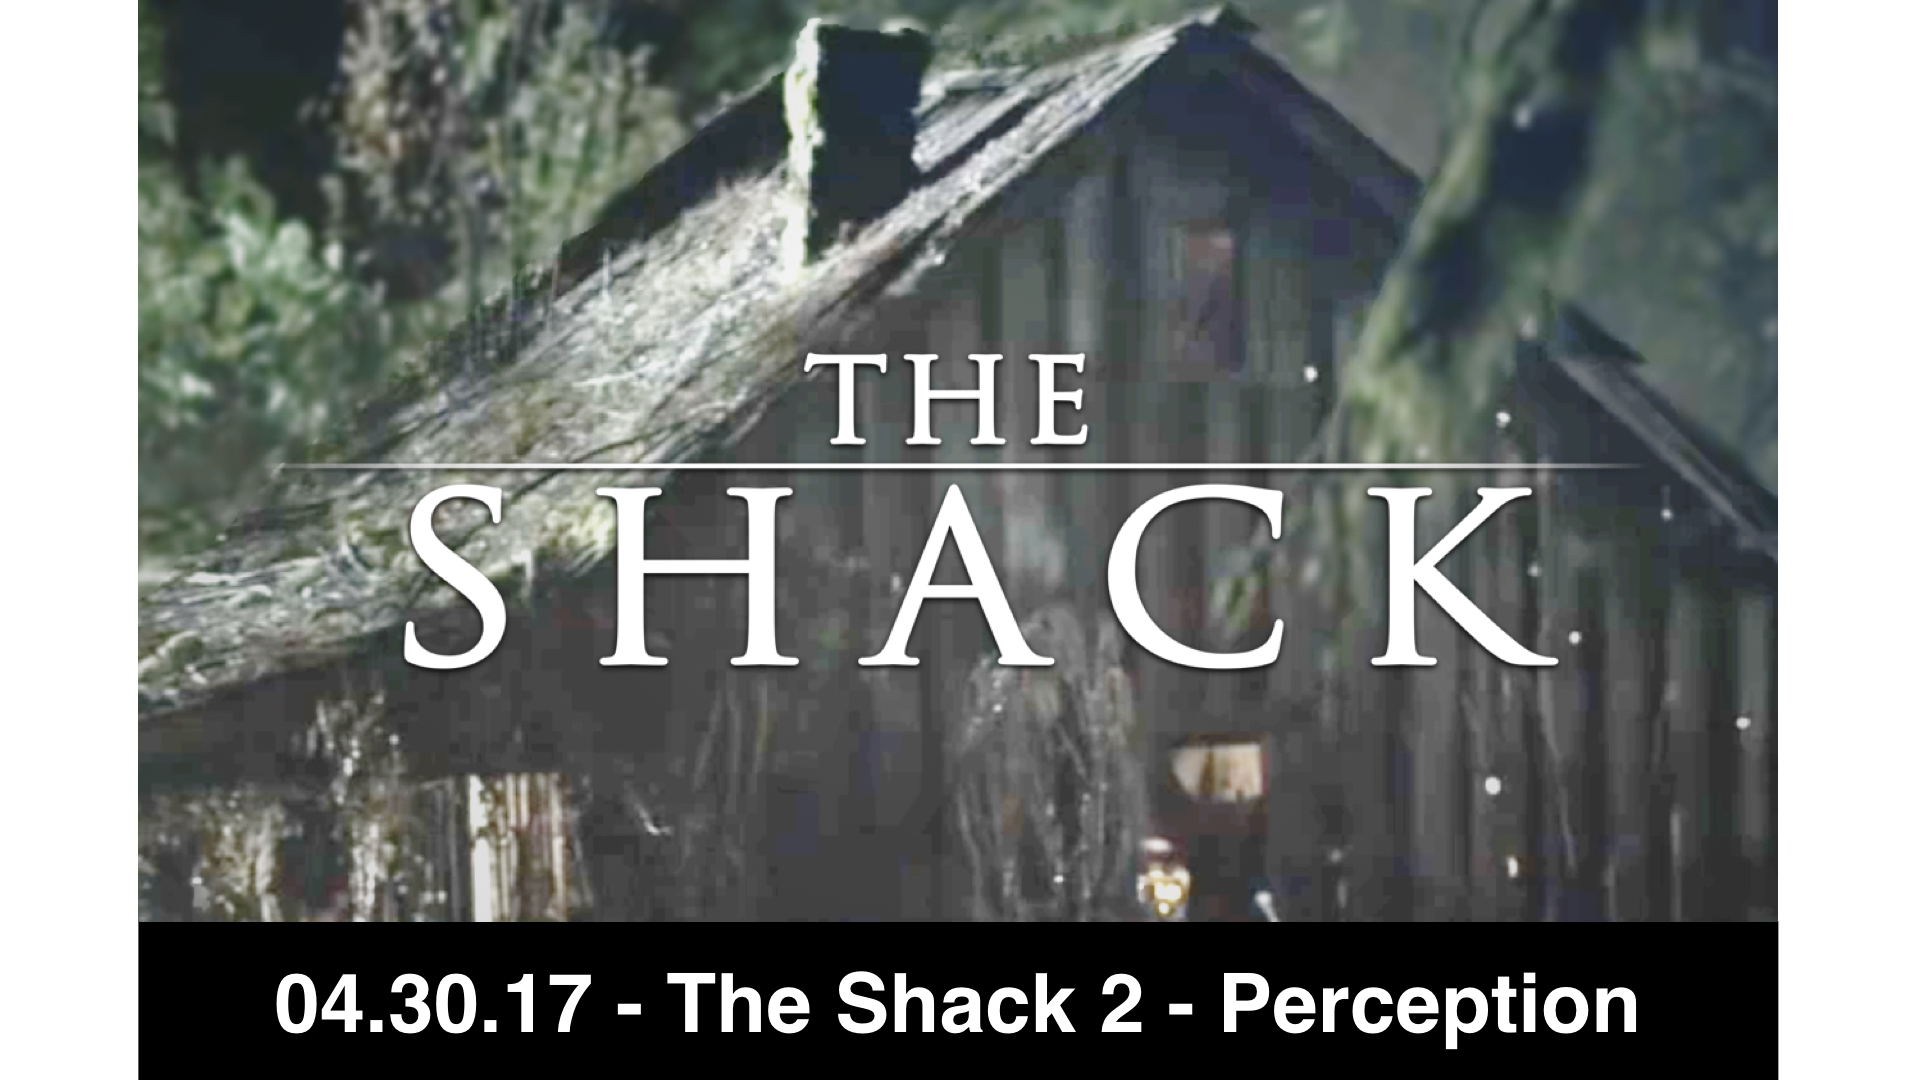 04.30.17 - The Shack 2 - Perception